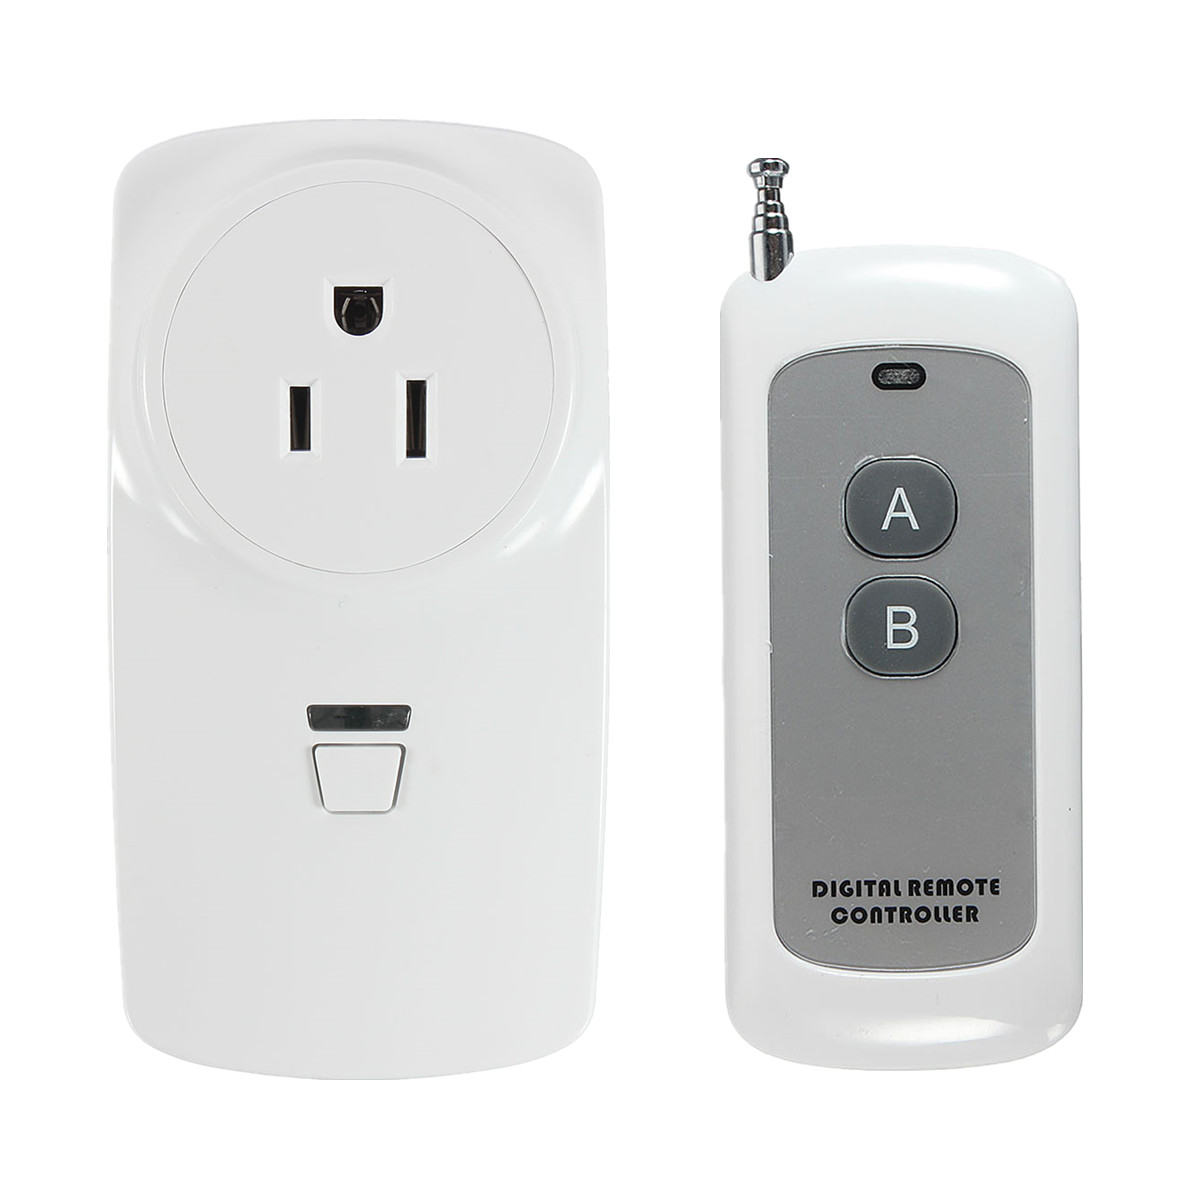 NEW Wireless Plug-In Power Socket Timer Switch Outlet Receiver With Remote Control Building Automation 3 pack wireless remote control power outlet switch plug socket infrared heater panel wireless socket